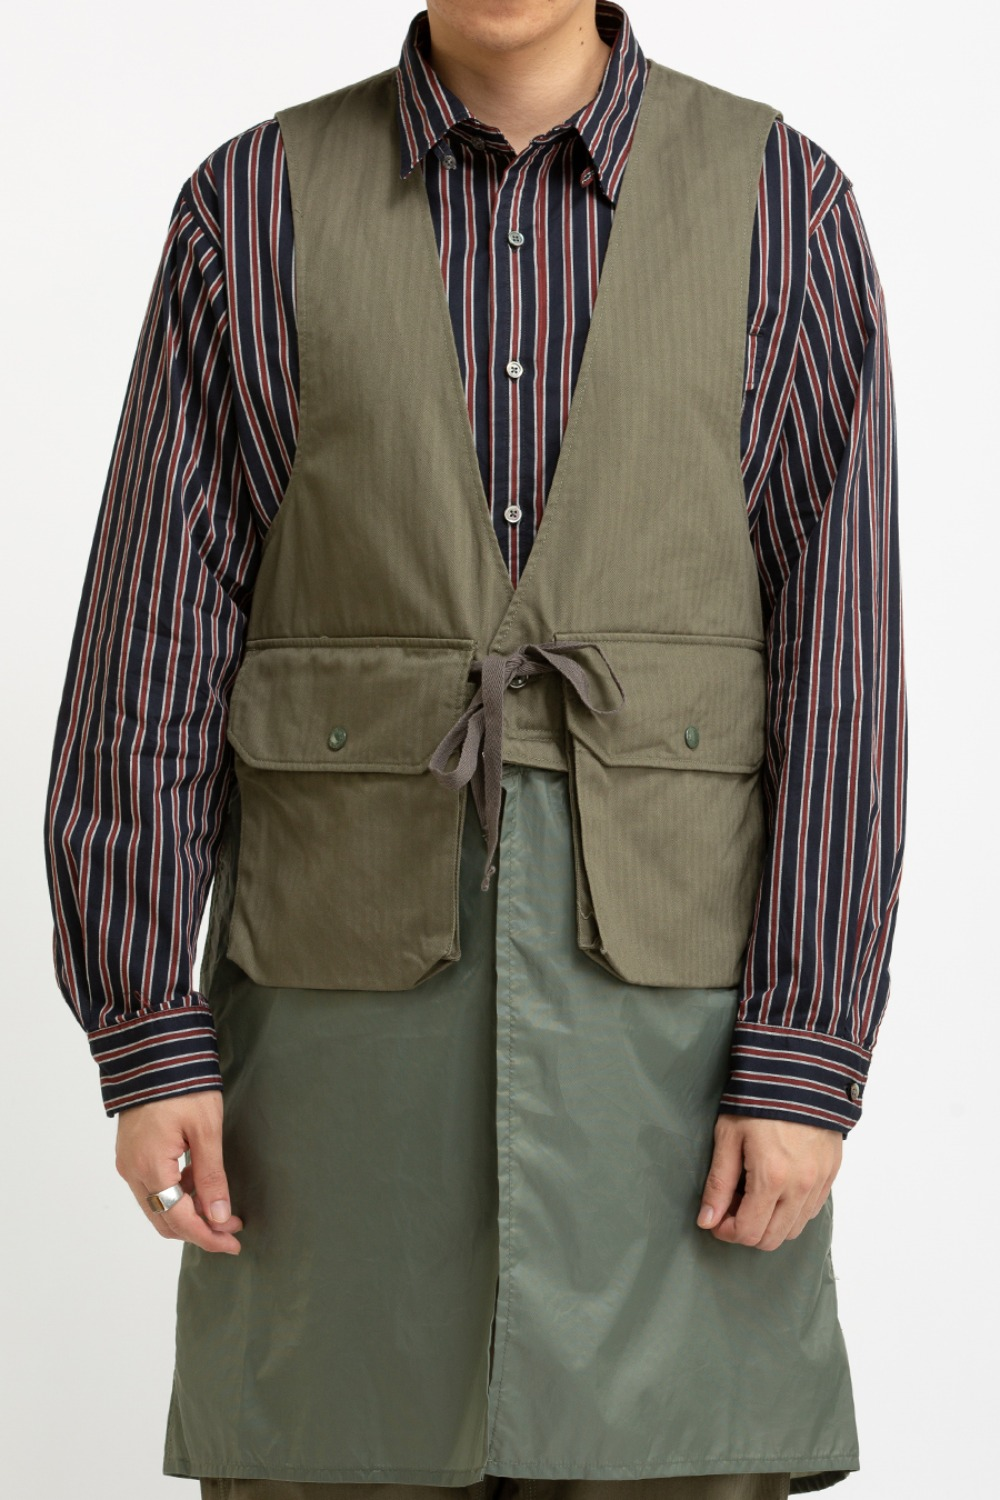 LONG FOWL VEST OLIVE COTTON HERRINGBONE